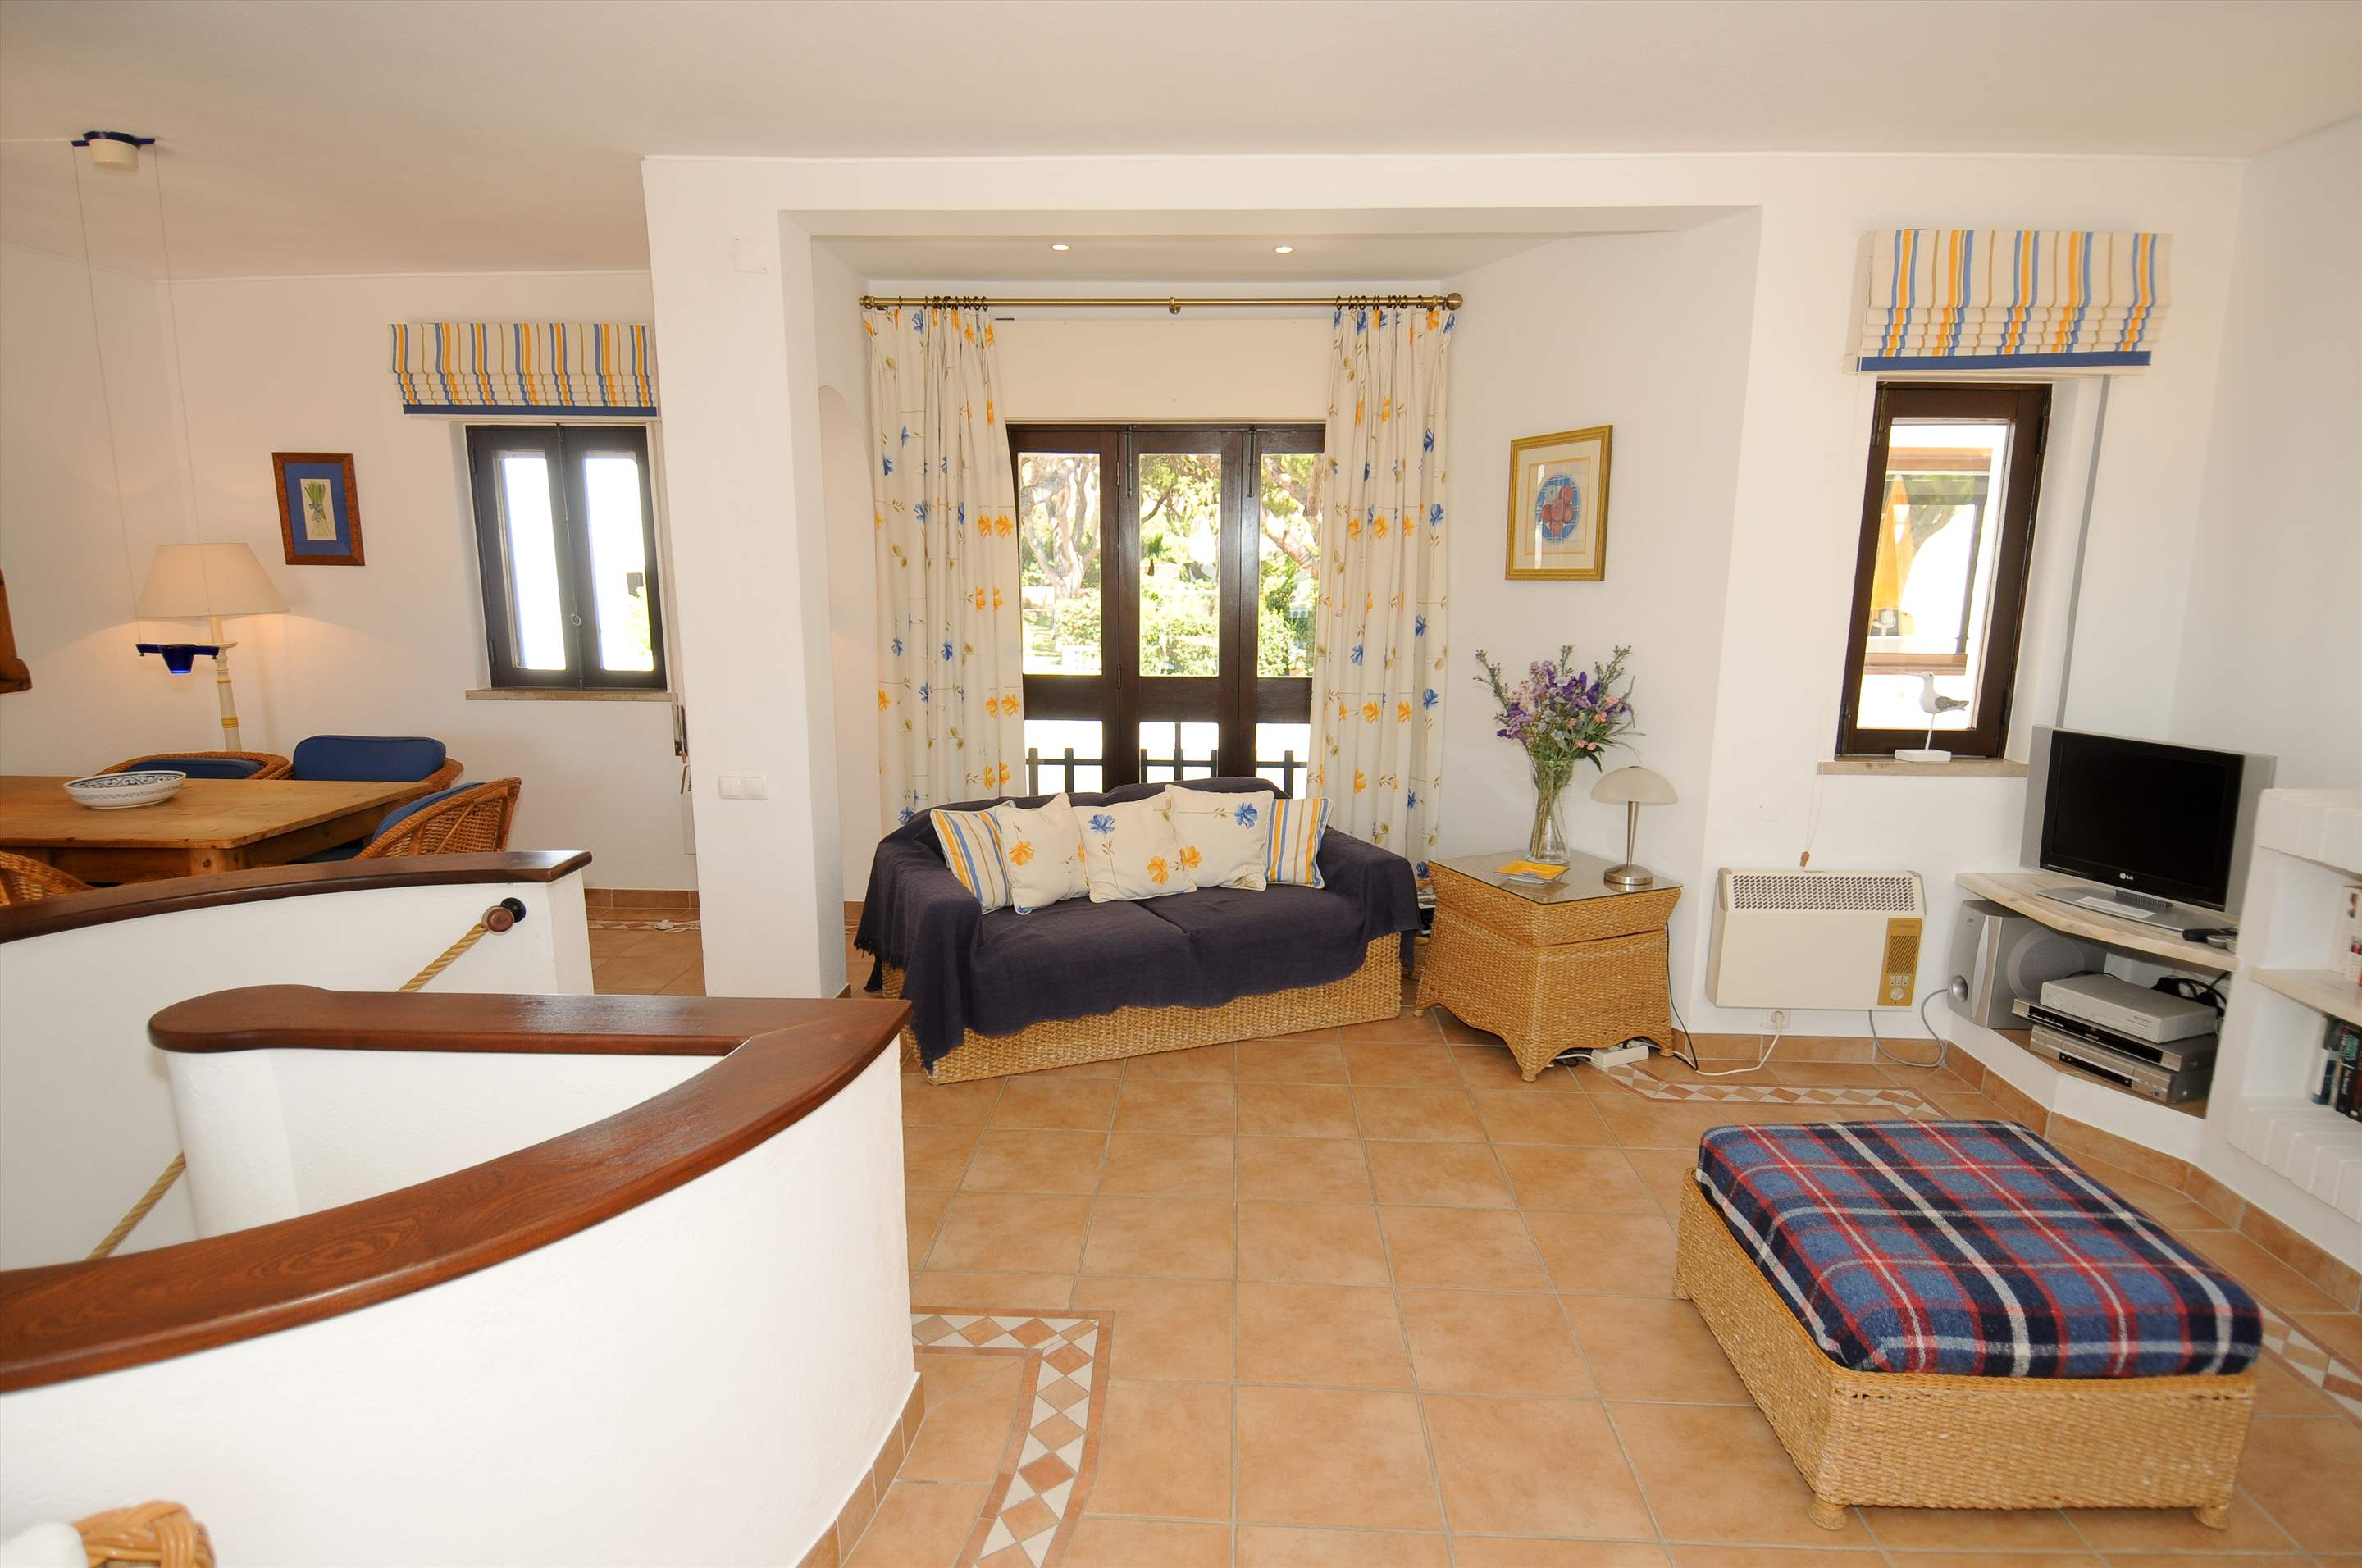 Villa Giroud, 2 bedroom villa in Vale do Lobo, Algarve Photo #4